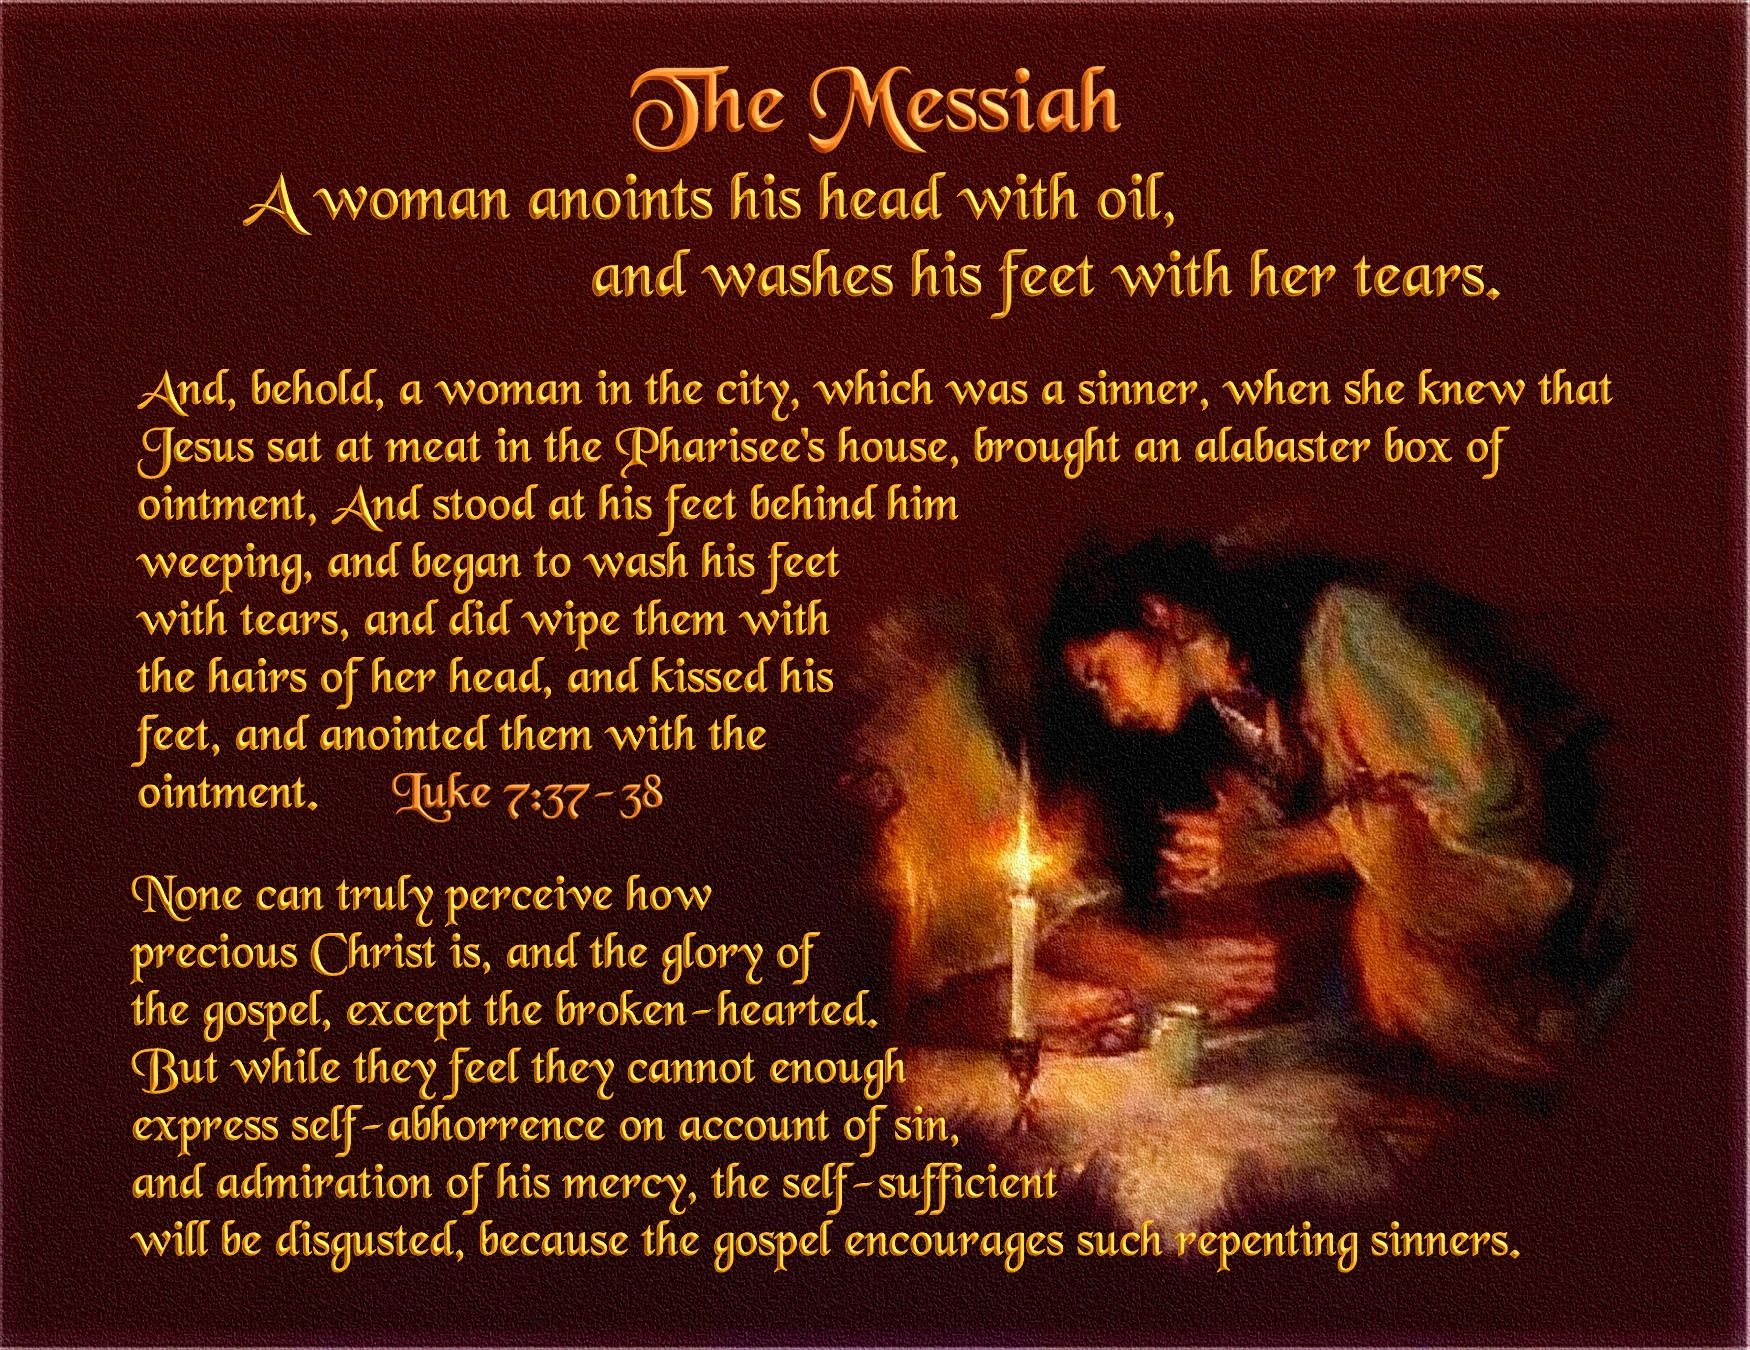 The Messiah A Woman Anoints His Head With Oil And Washes His